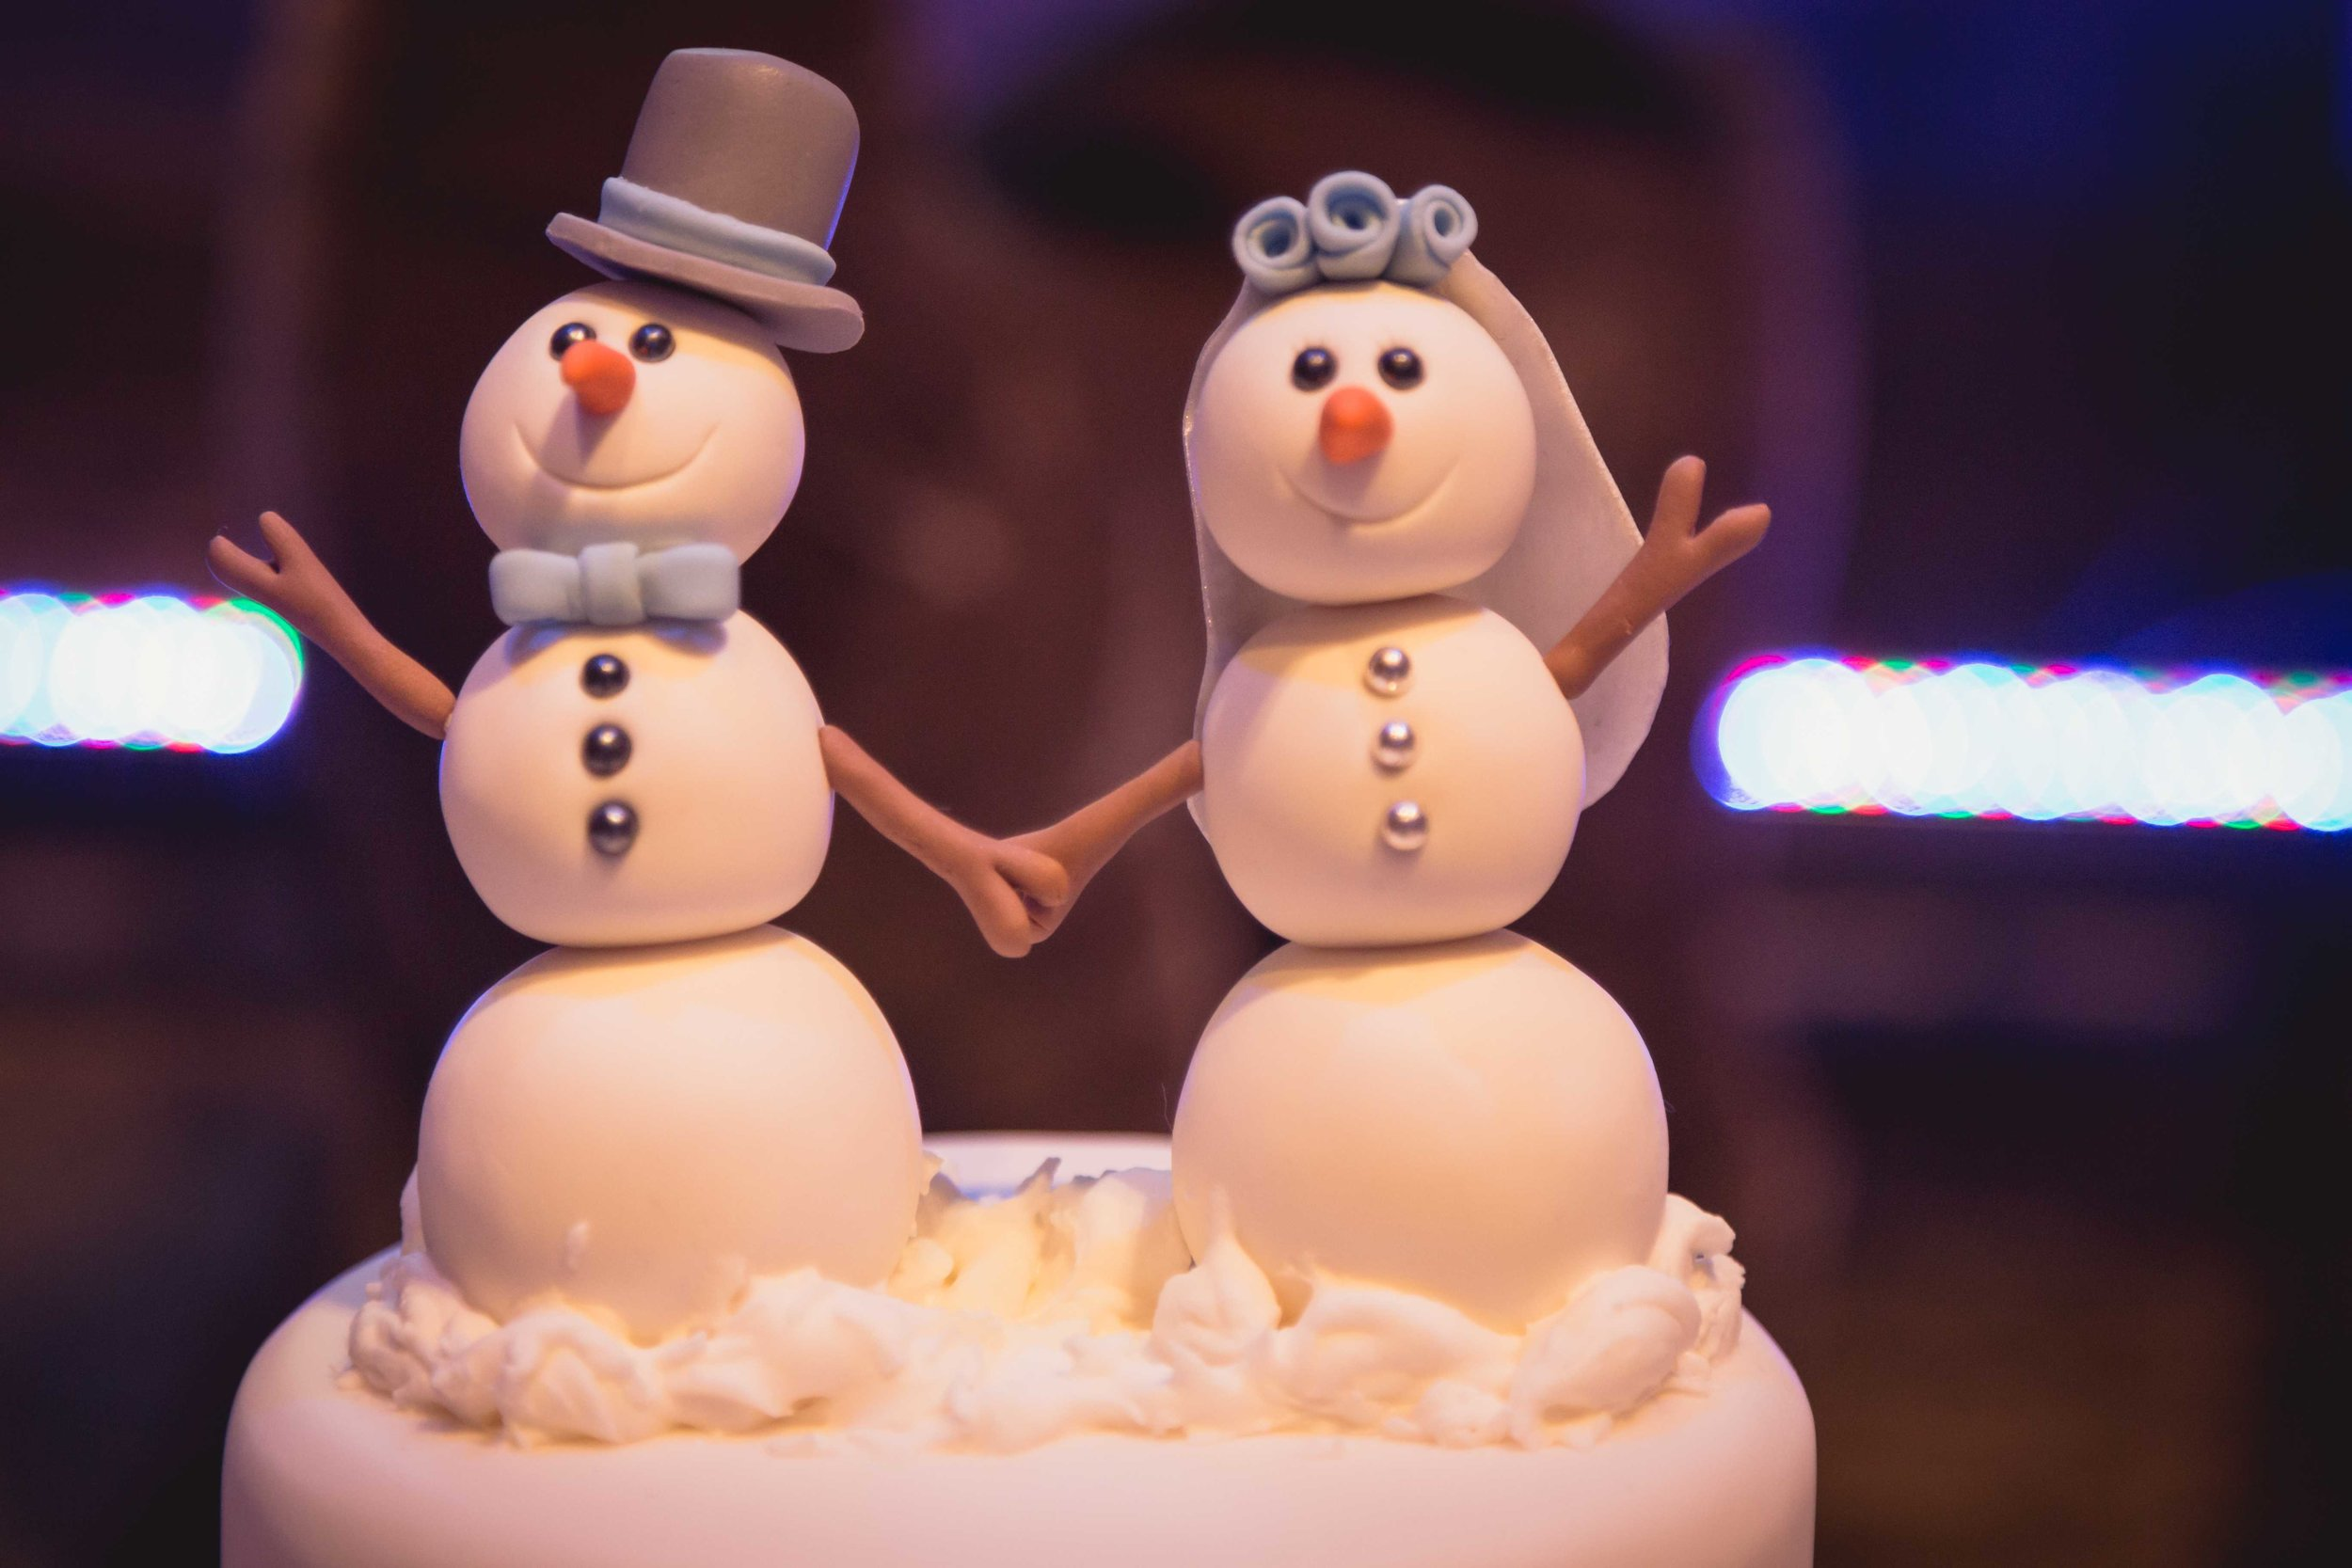 Close up image of weeding cake toppers